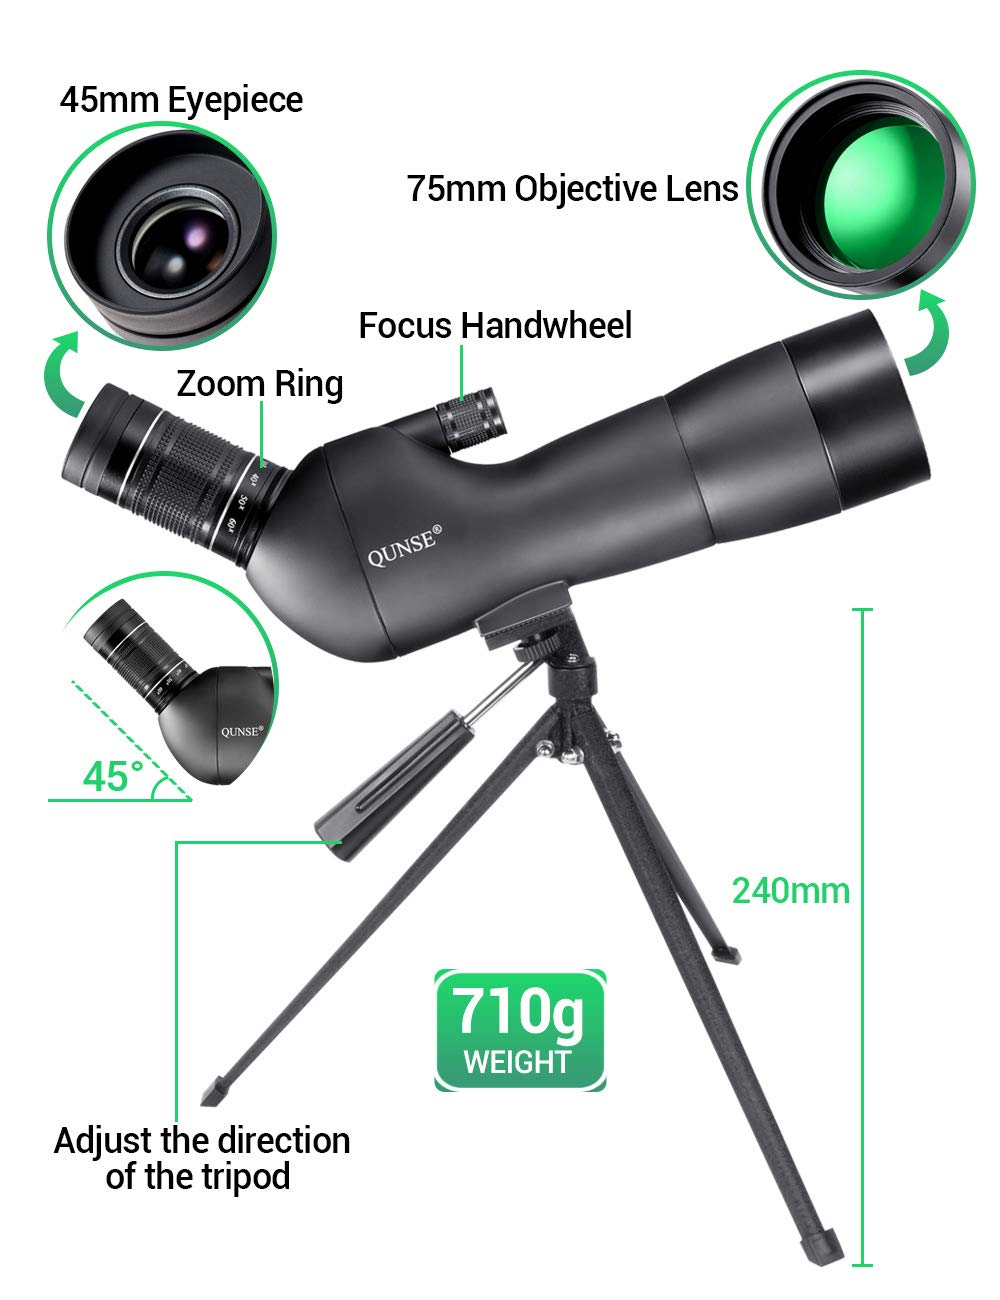 20-60X60 Zoom Multilayer Coating Optical Lens Bird Watching with Broad Horizon QUNSE Spotting Scope Animals and Outdoor Activities Perfectly for Observing Birds